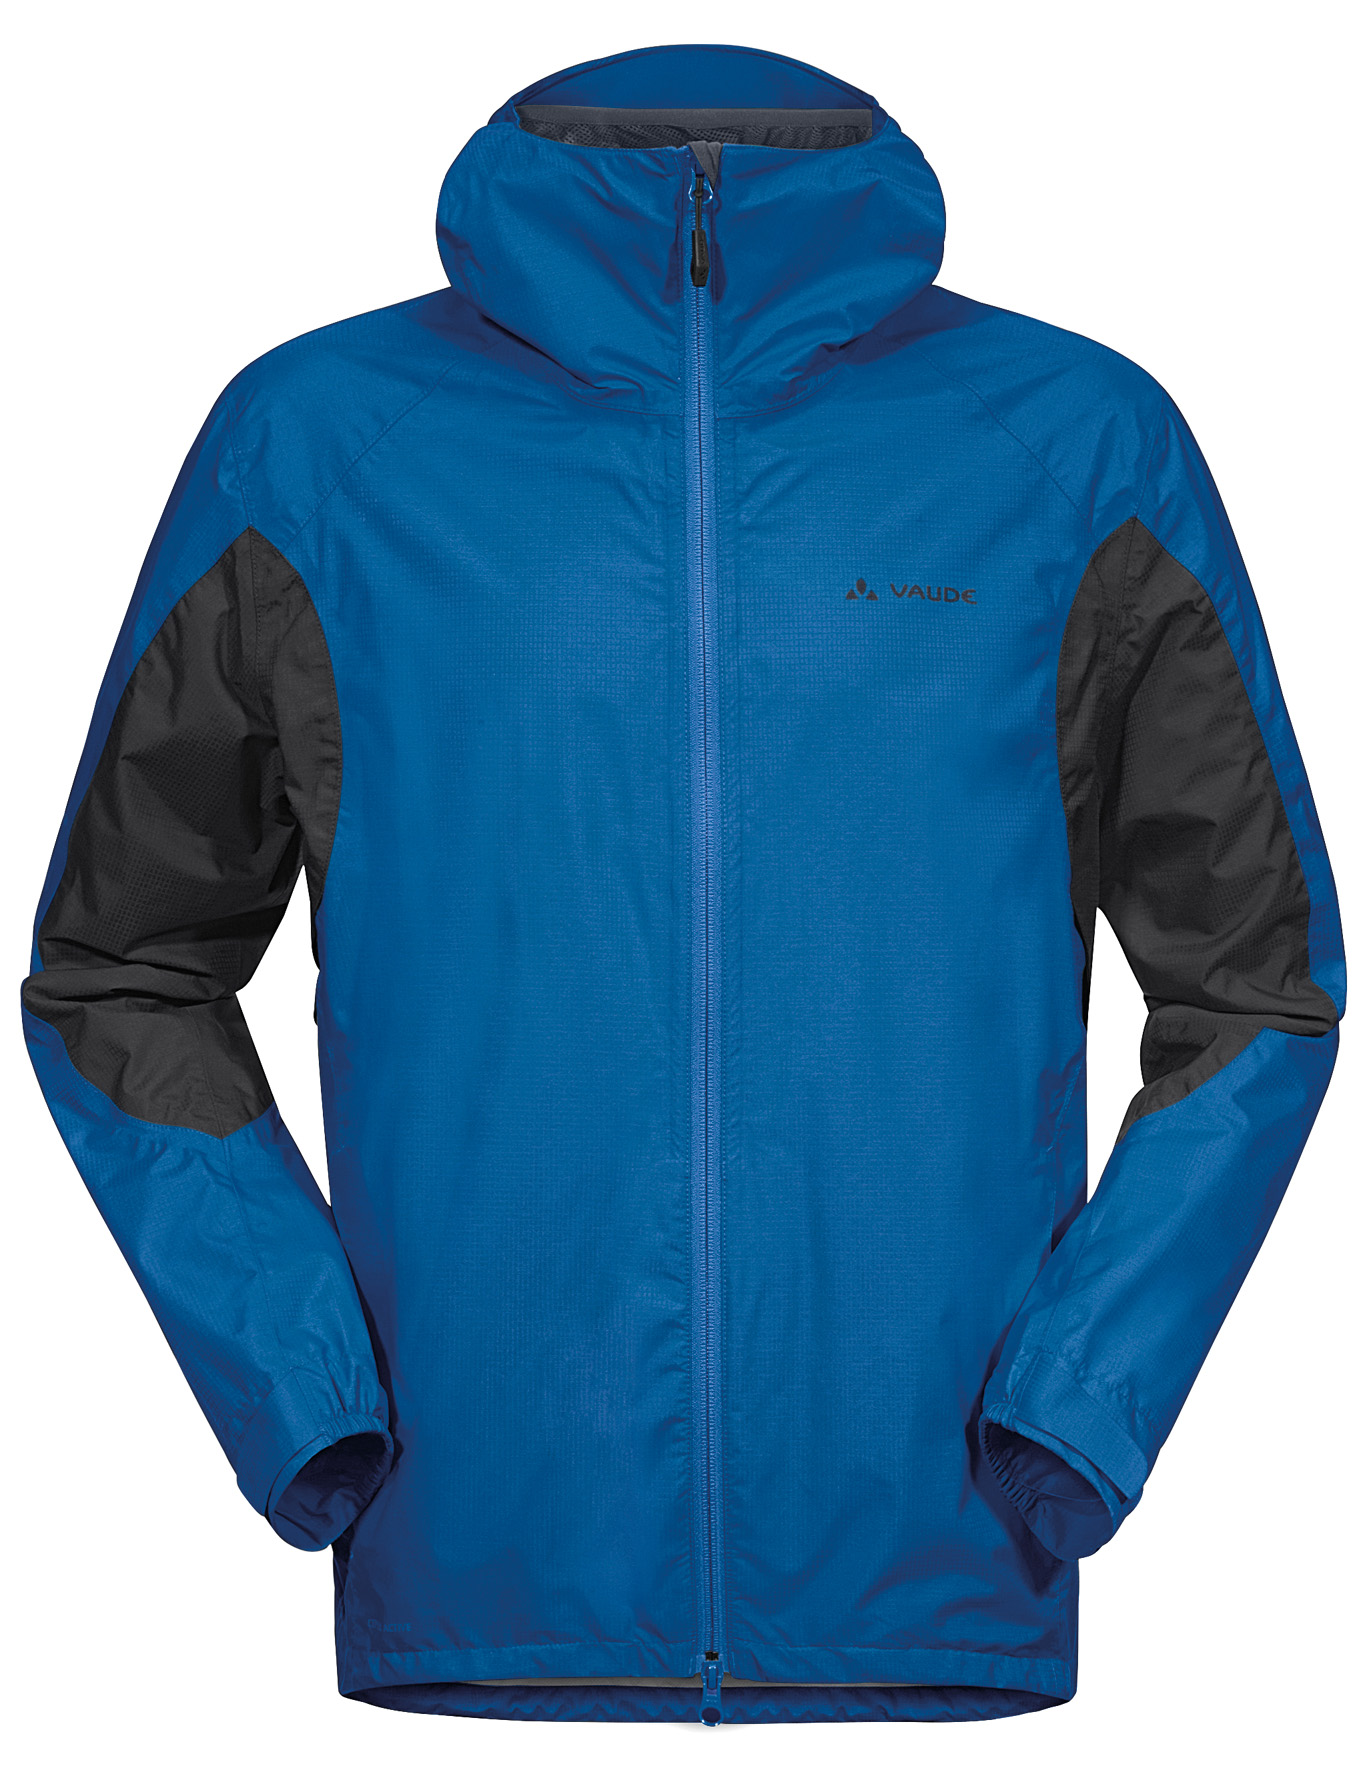 VAUDE Men´s Yaras Jacket blue Größe S - schneider-sports